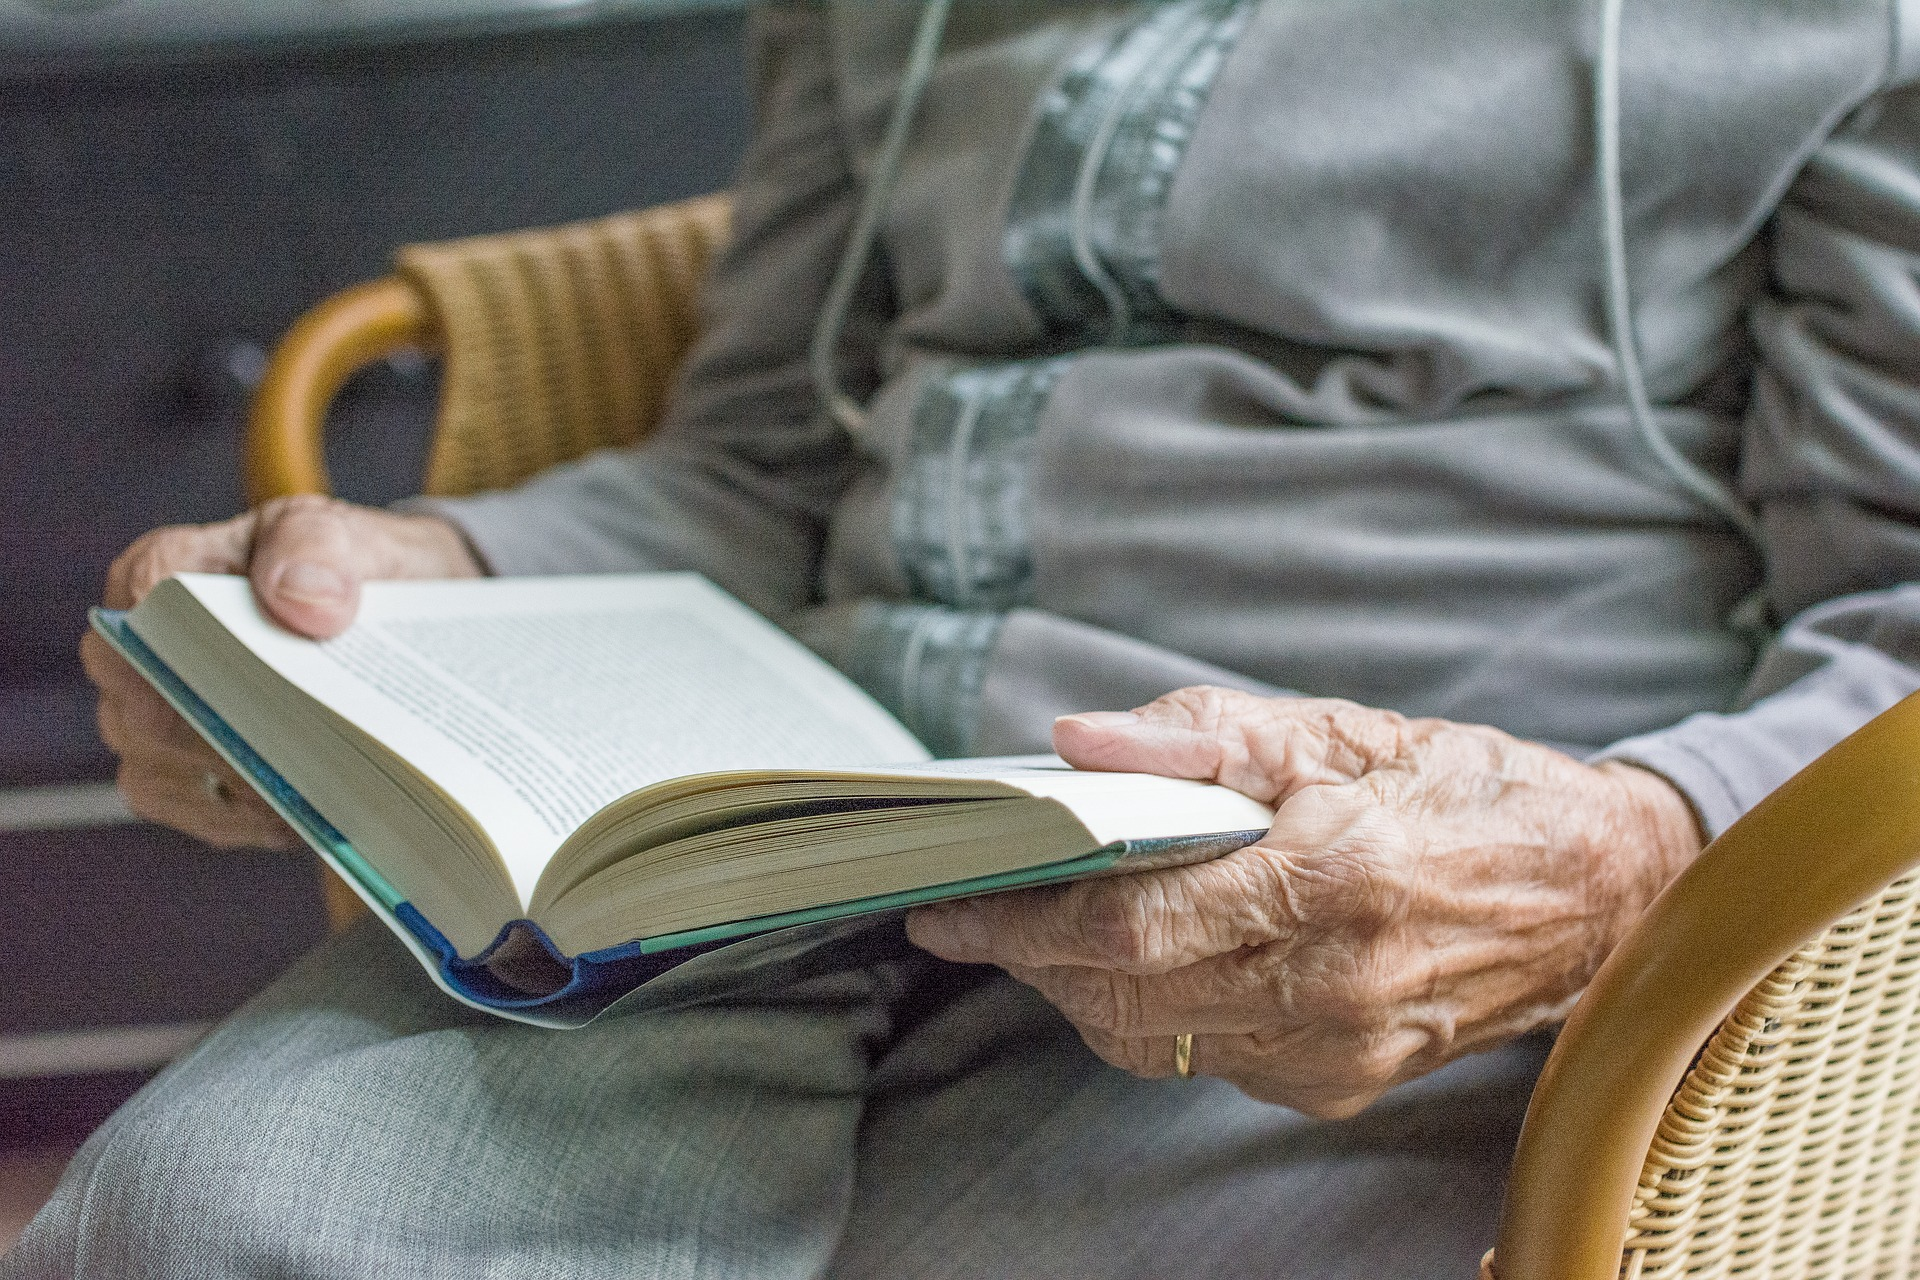 Image shows a lady sitting in a chair reading.